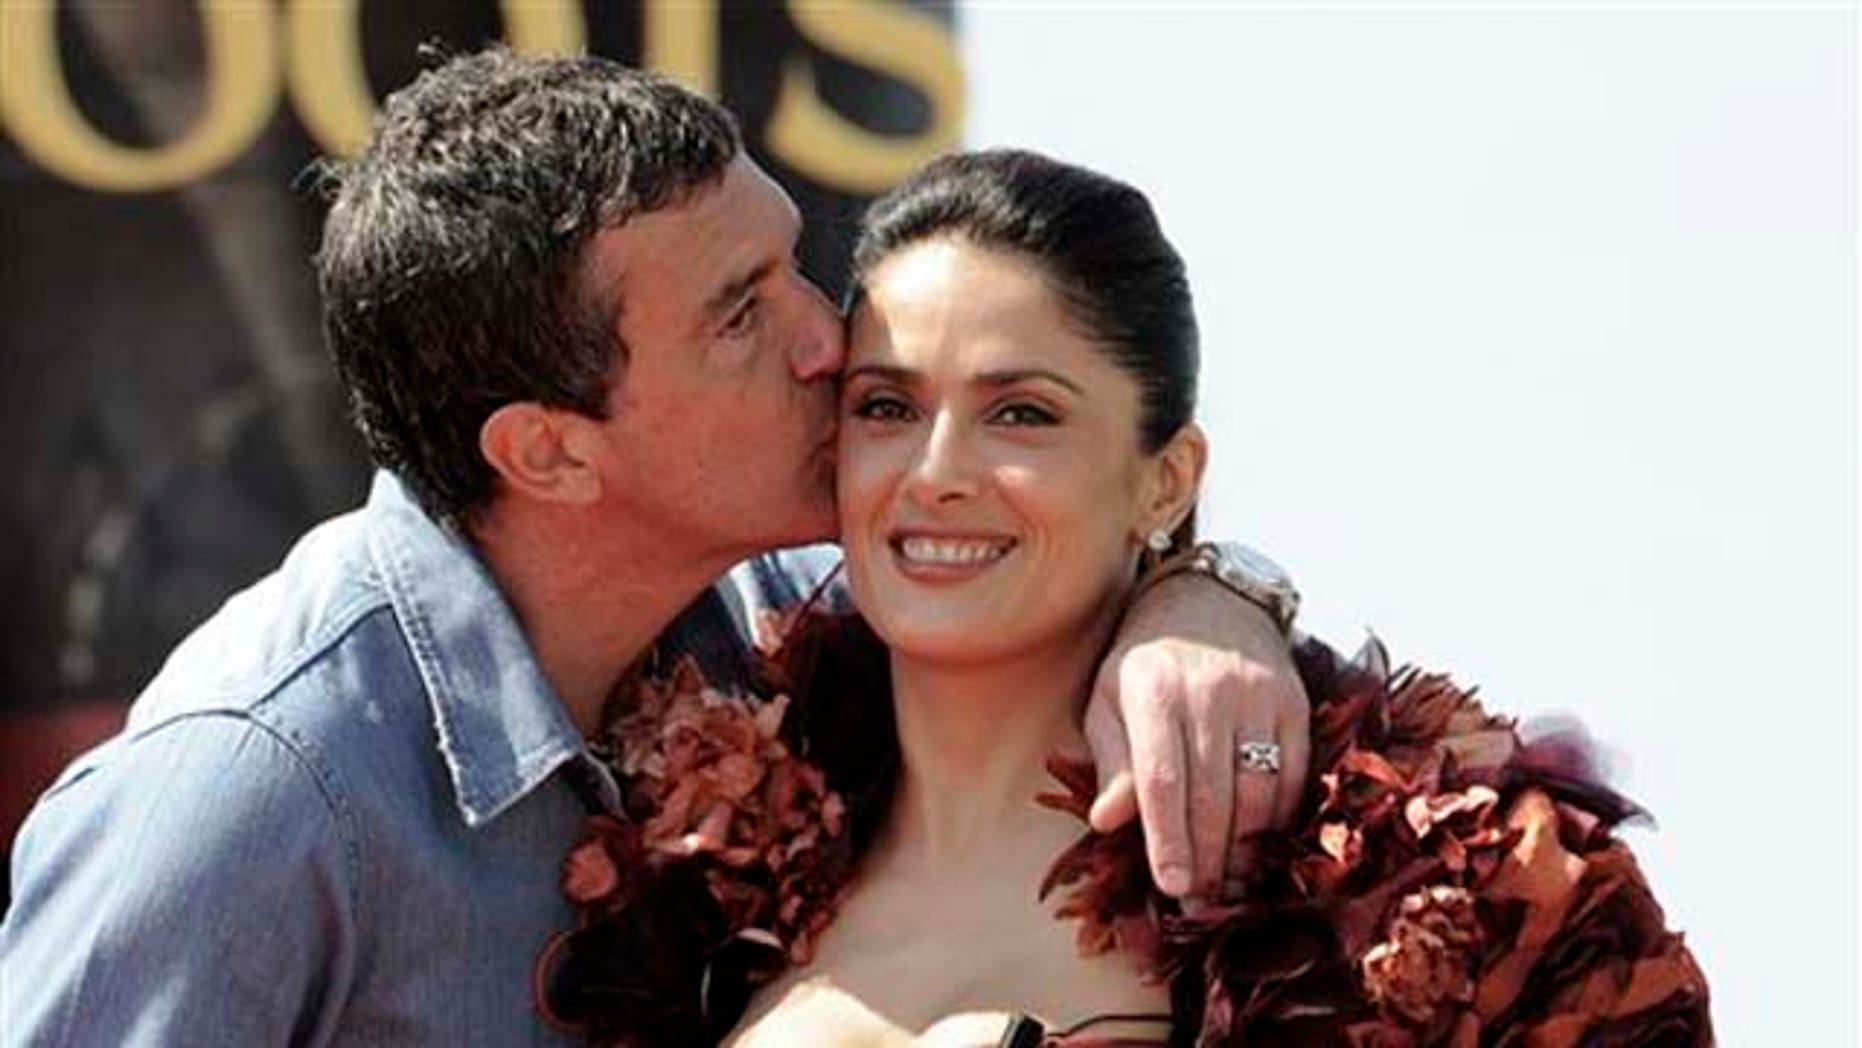 Actor Antonio Banderas, left, kisses actress Salma Hayek on the cheek during a photo call for Puss in Boots, at the 64th international film festival, in Cannes, southern France, Wednesday, May 11, 2011. (AP Photo/Jonathan Short)